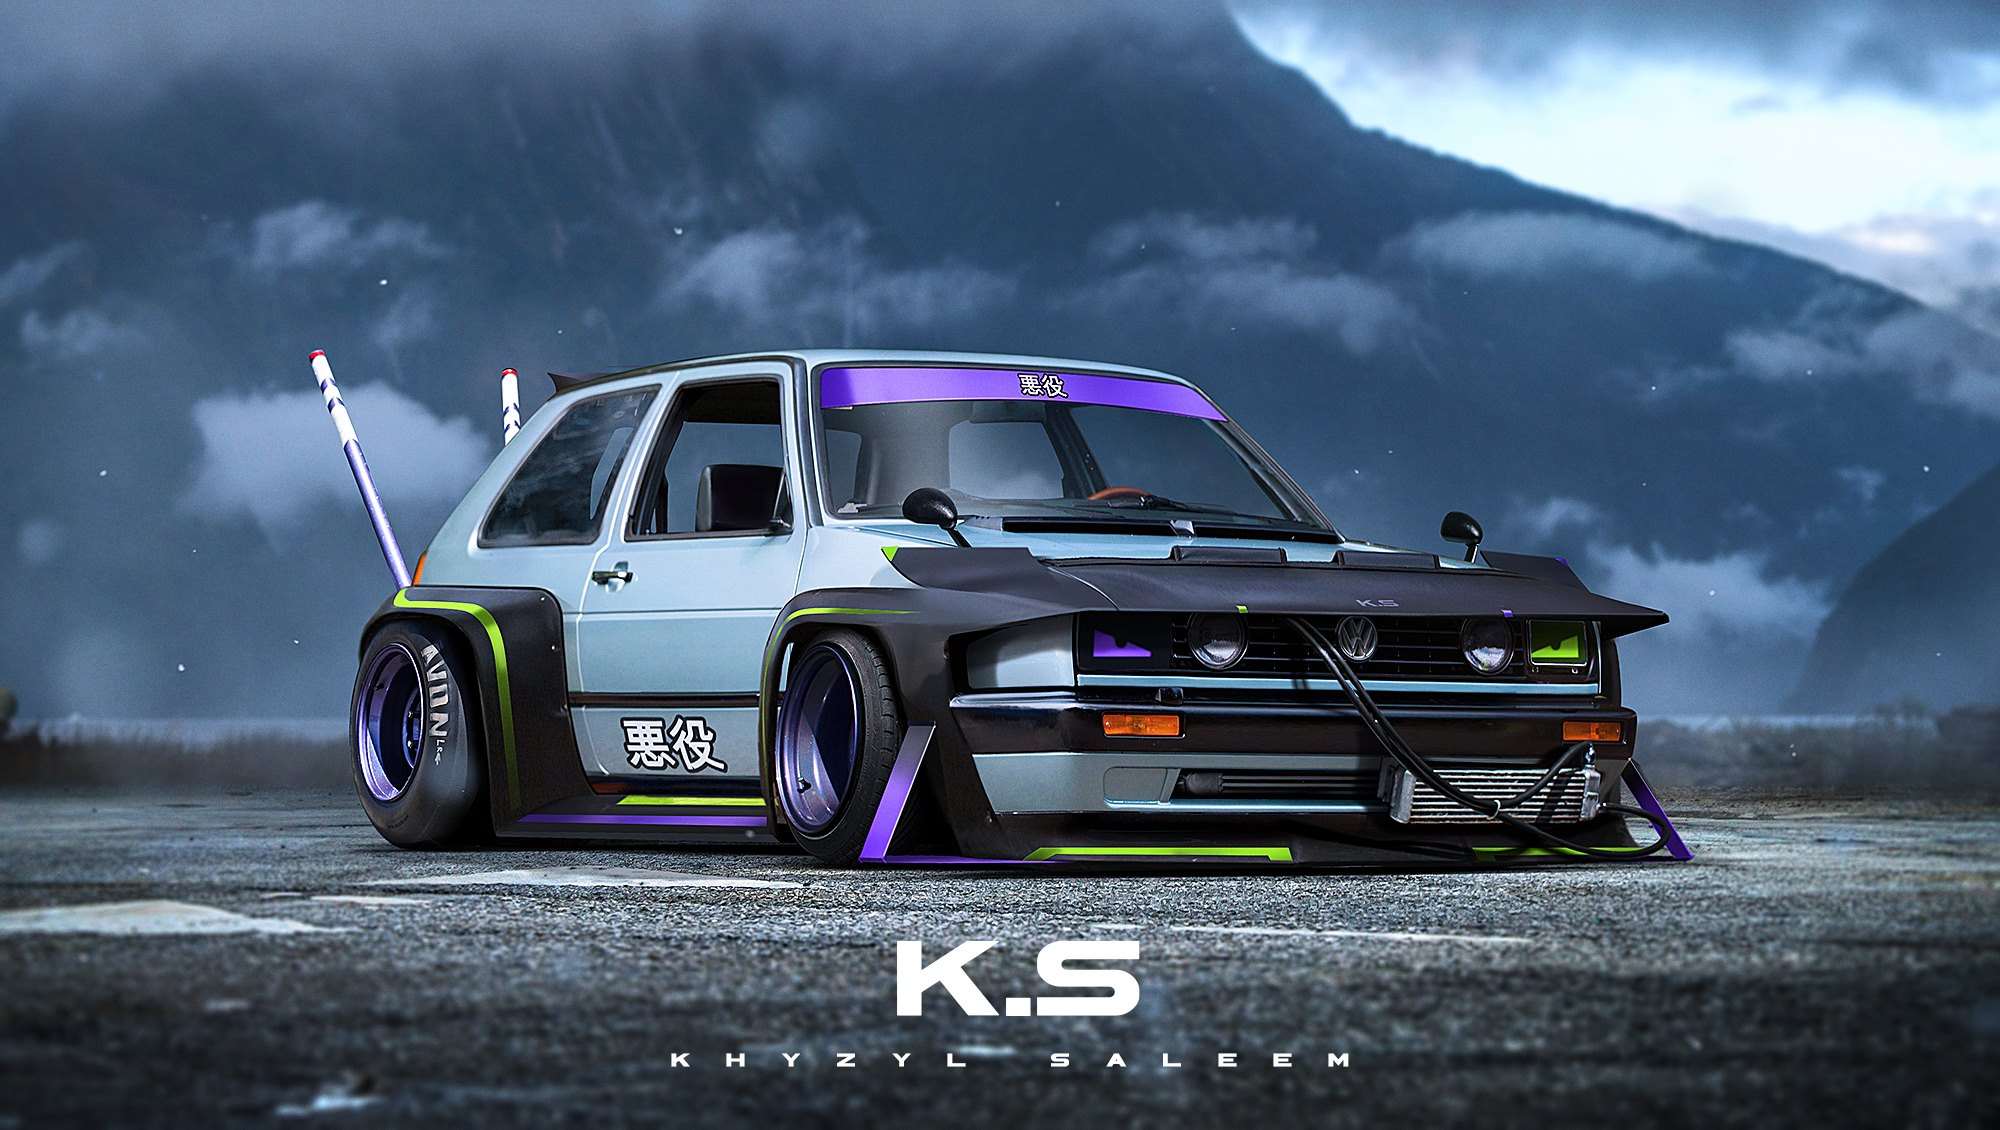 Volkswagen golf mk ii goes all bosozoku in this jdm cool rendering